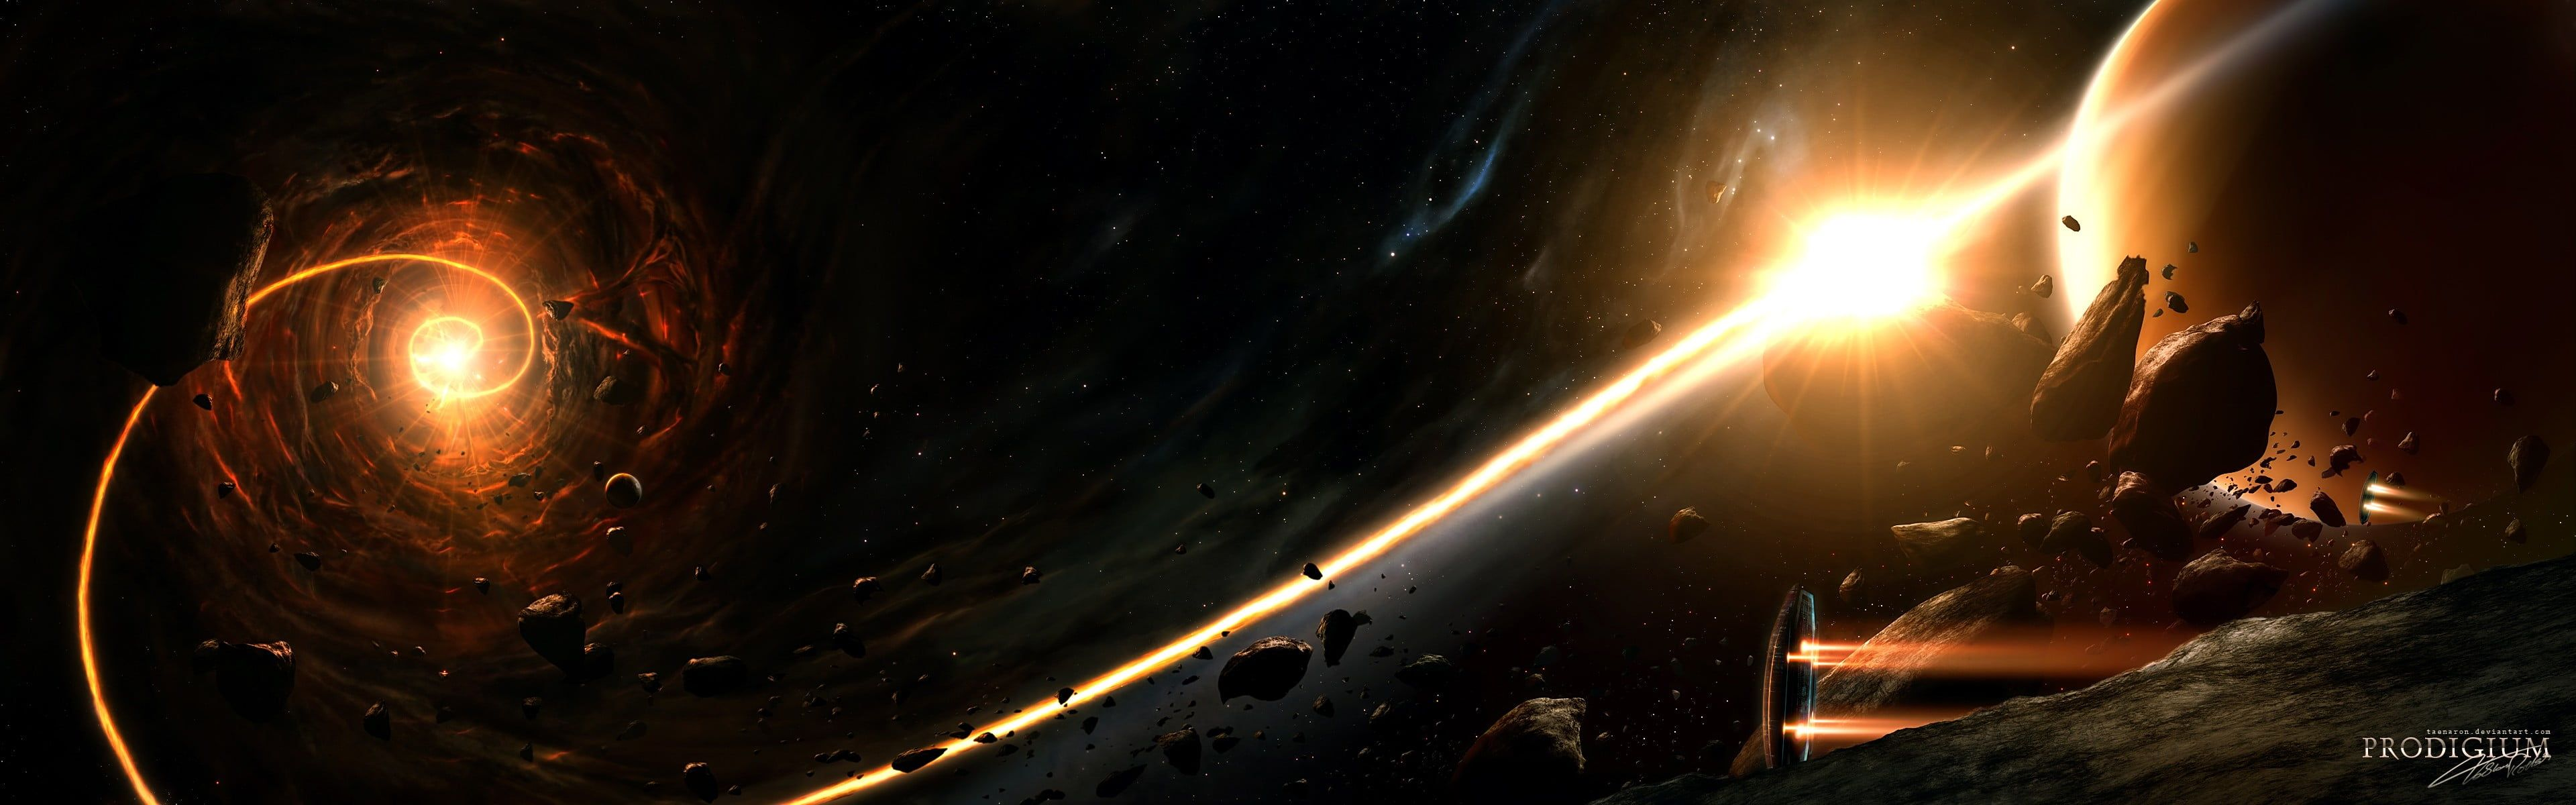 Black And Yellow Cosmic Wallpaper Space Planet Asteroid Spaceship Stars Nebula Universe Space Art Digital Art Scienc Space Art Wallpaper Space Wallpaper